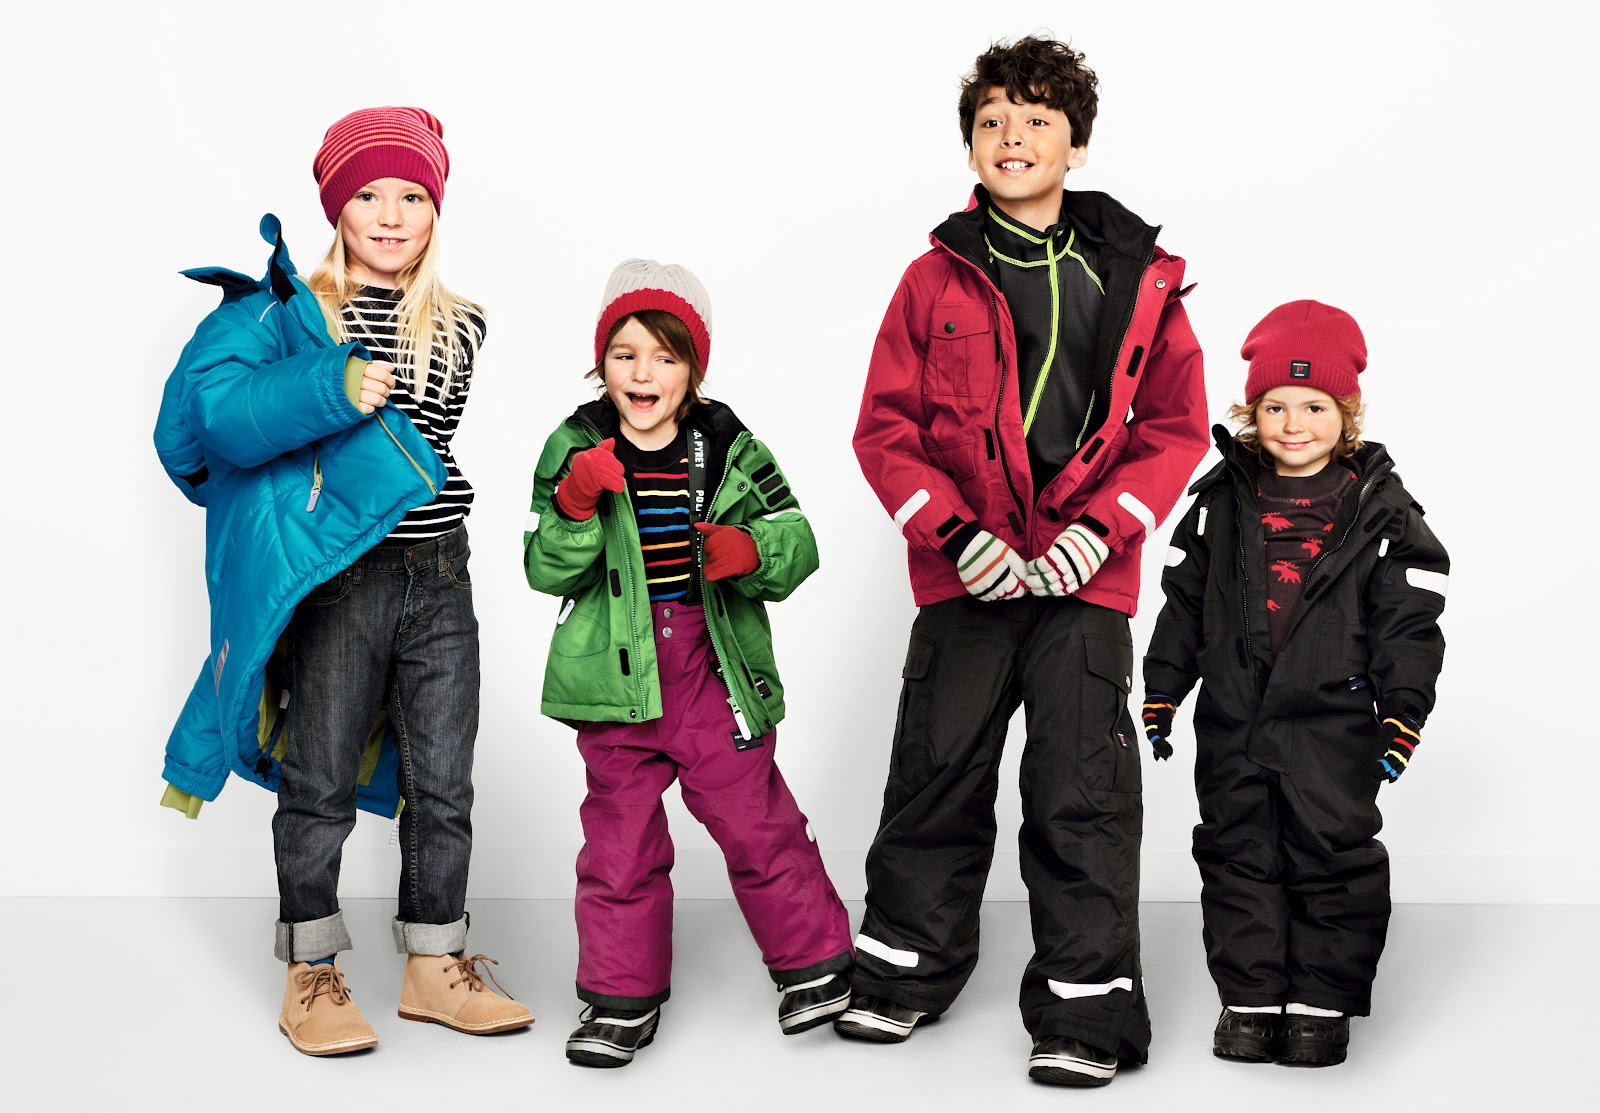 Kids' Clearance Clothing at Macy's is a great opportunity to save. Shop Kids' Clearance Clothing at Macy's and find the latest styles for you little one today.